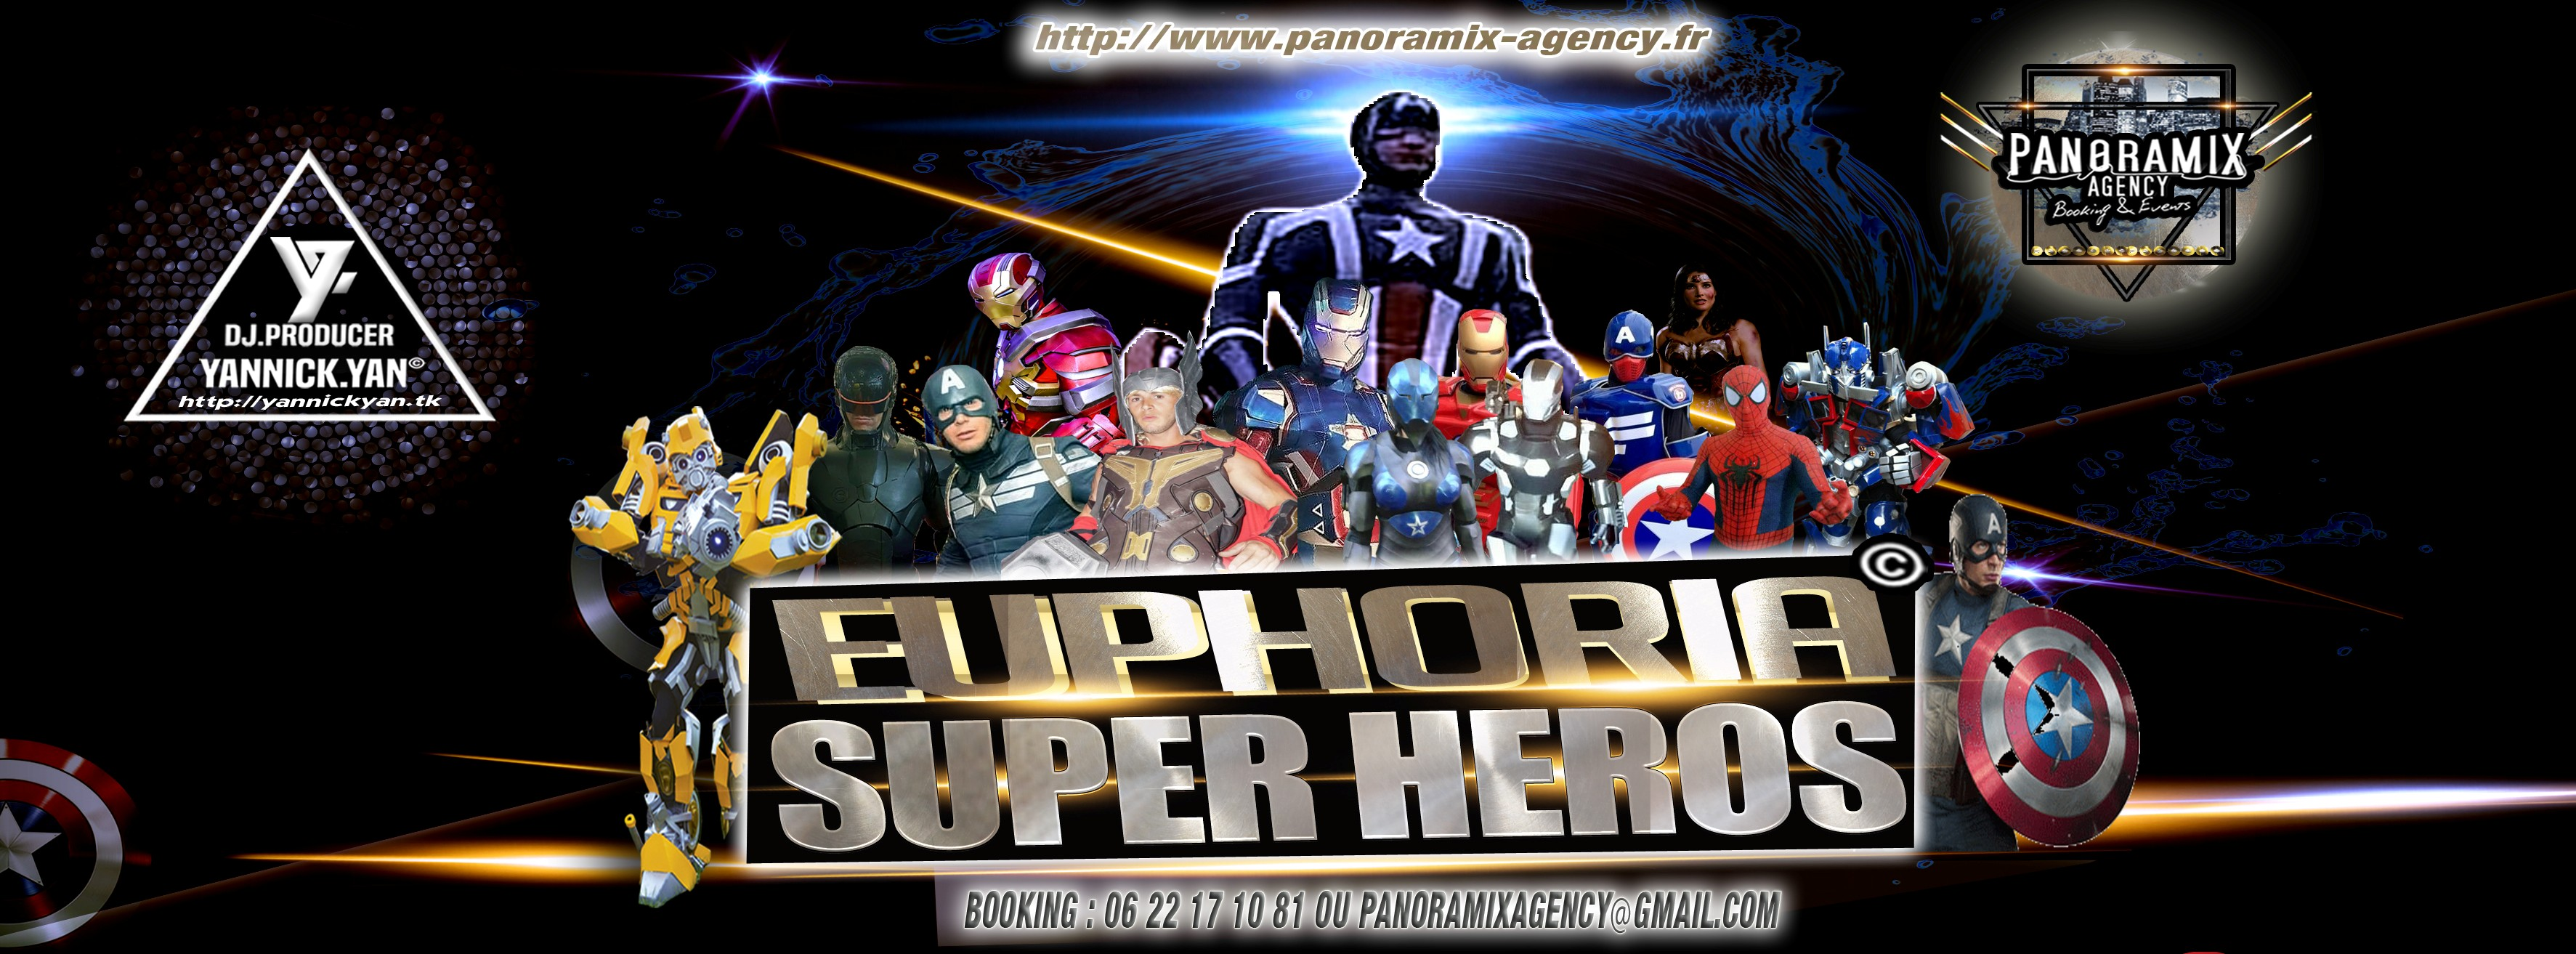 http://panoramix-radio-station.com/wp-content/uploads/2017/04/SUPER-HERO-EUPHORIA-BANNER-SITE.jpg